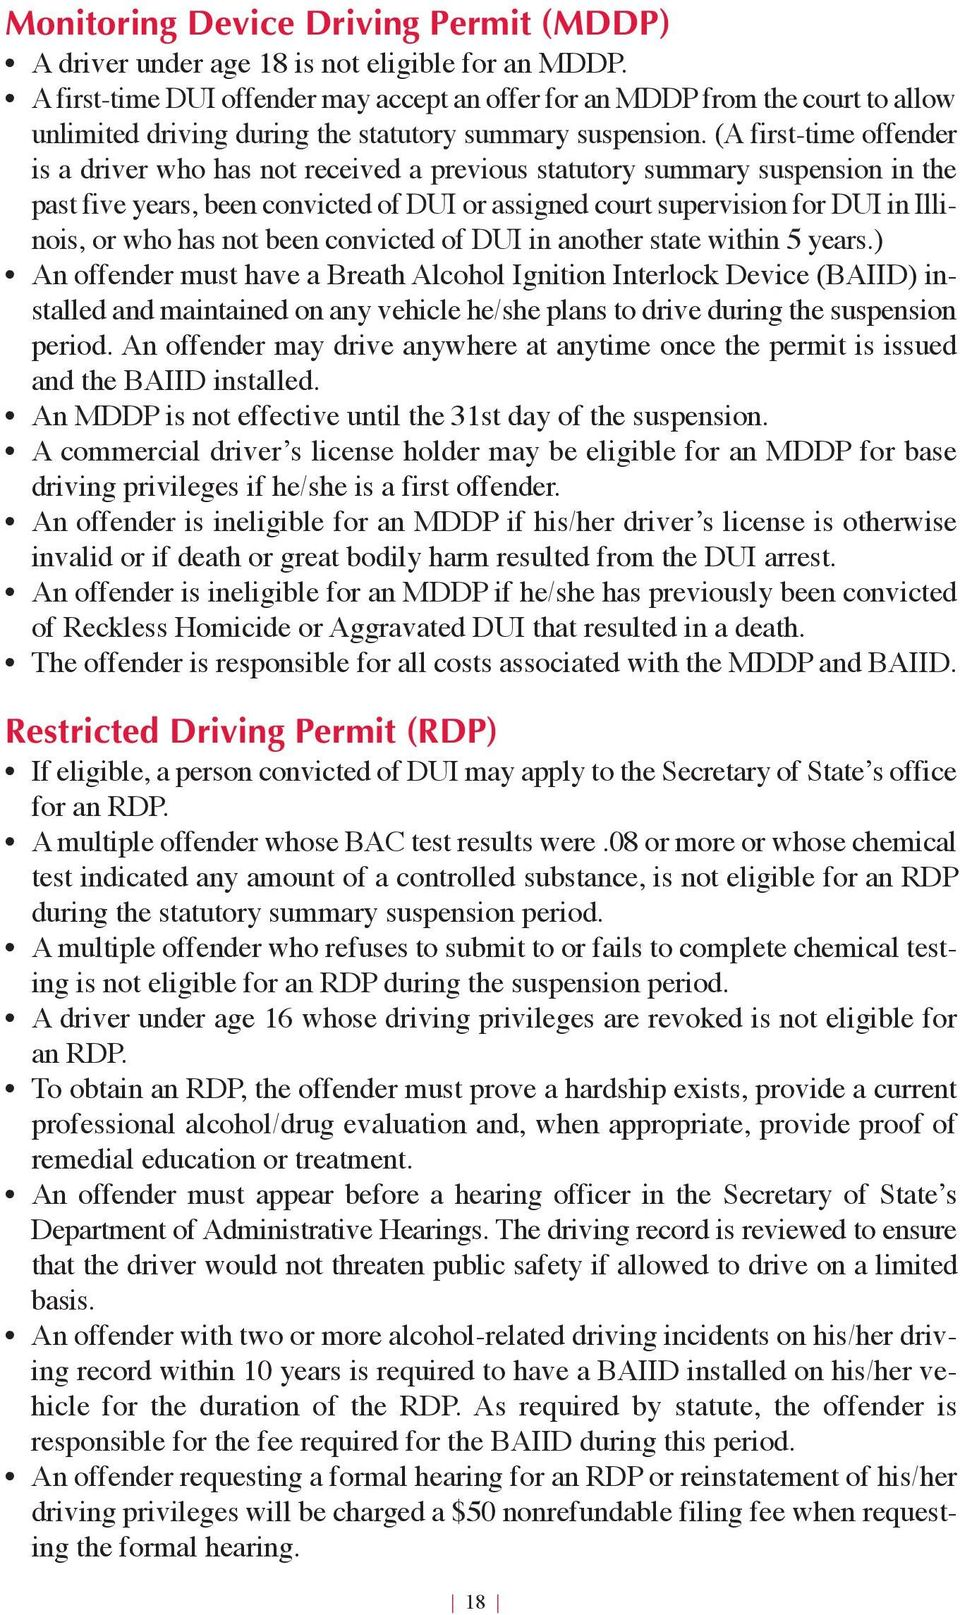 (A first-time offender is a driver who has not received a previous statutory summary suspension in the past five years, been convicted of DUI or assigned court supervision for DUI in Illinois, or who